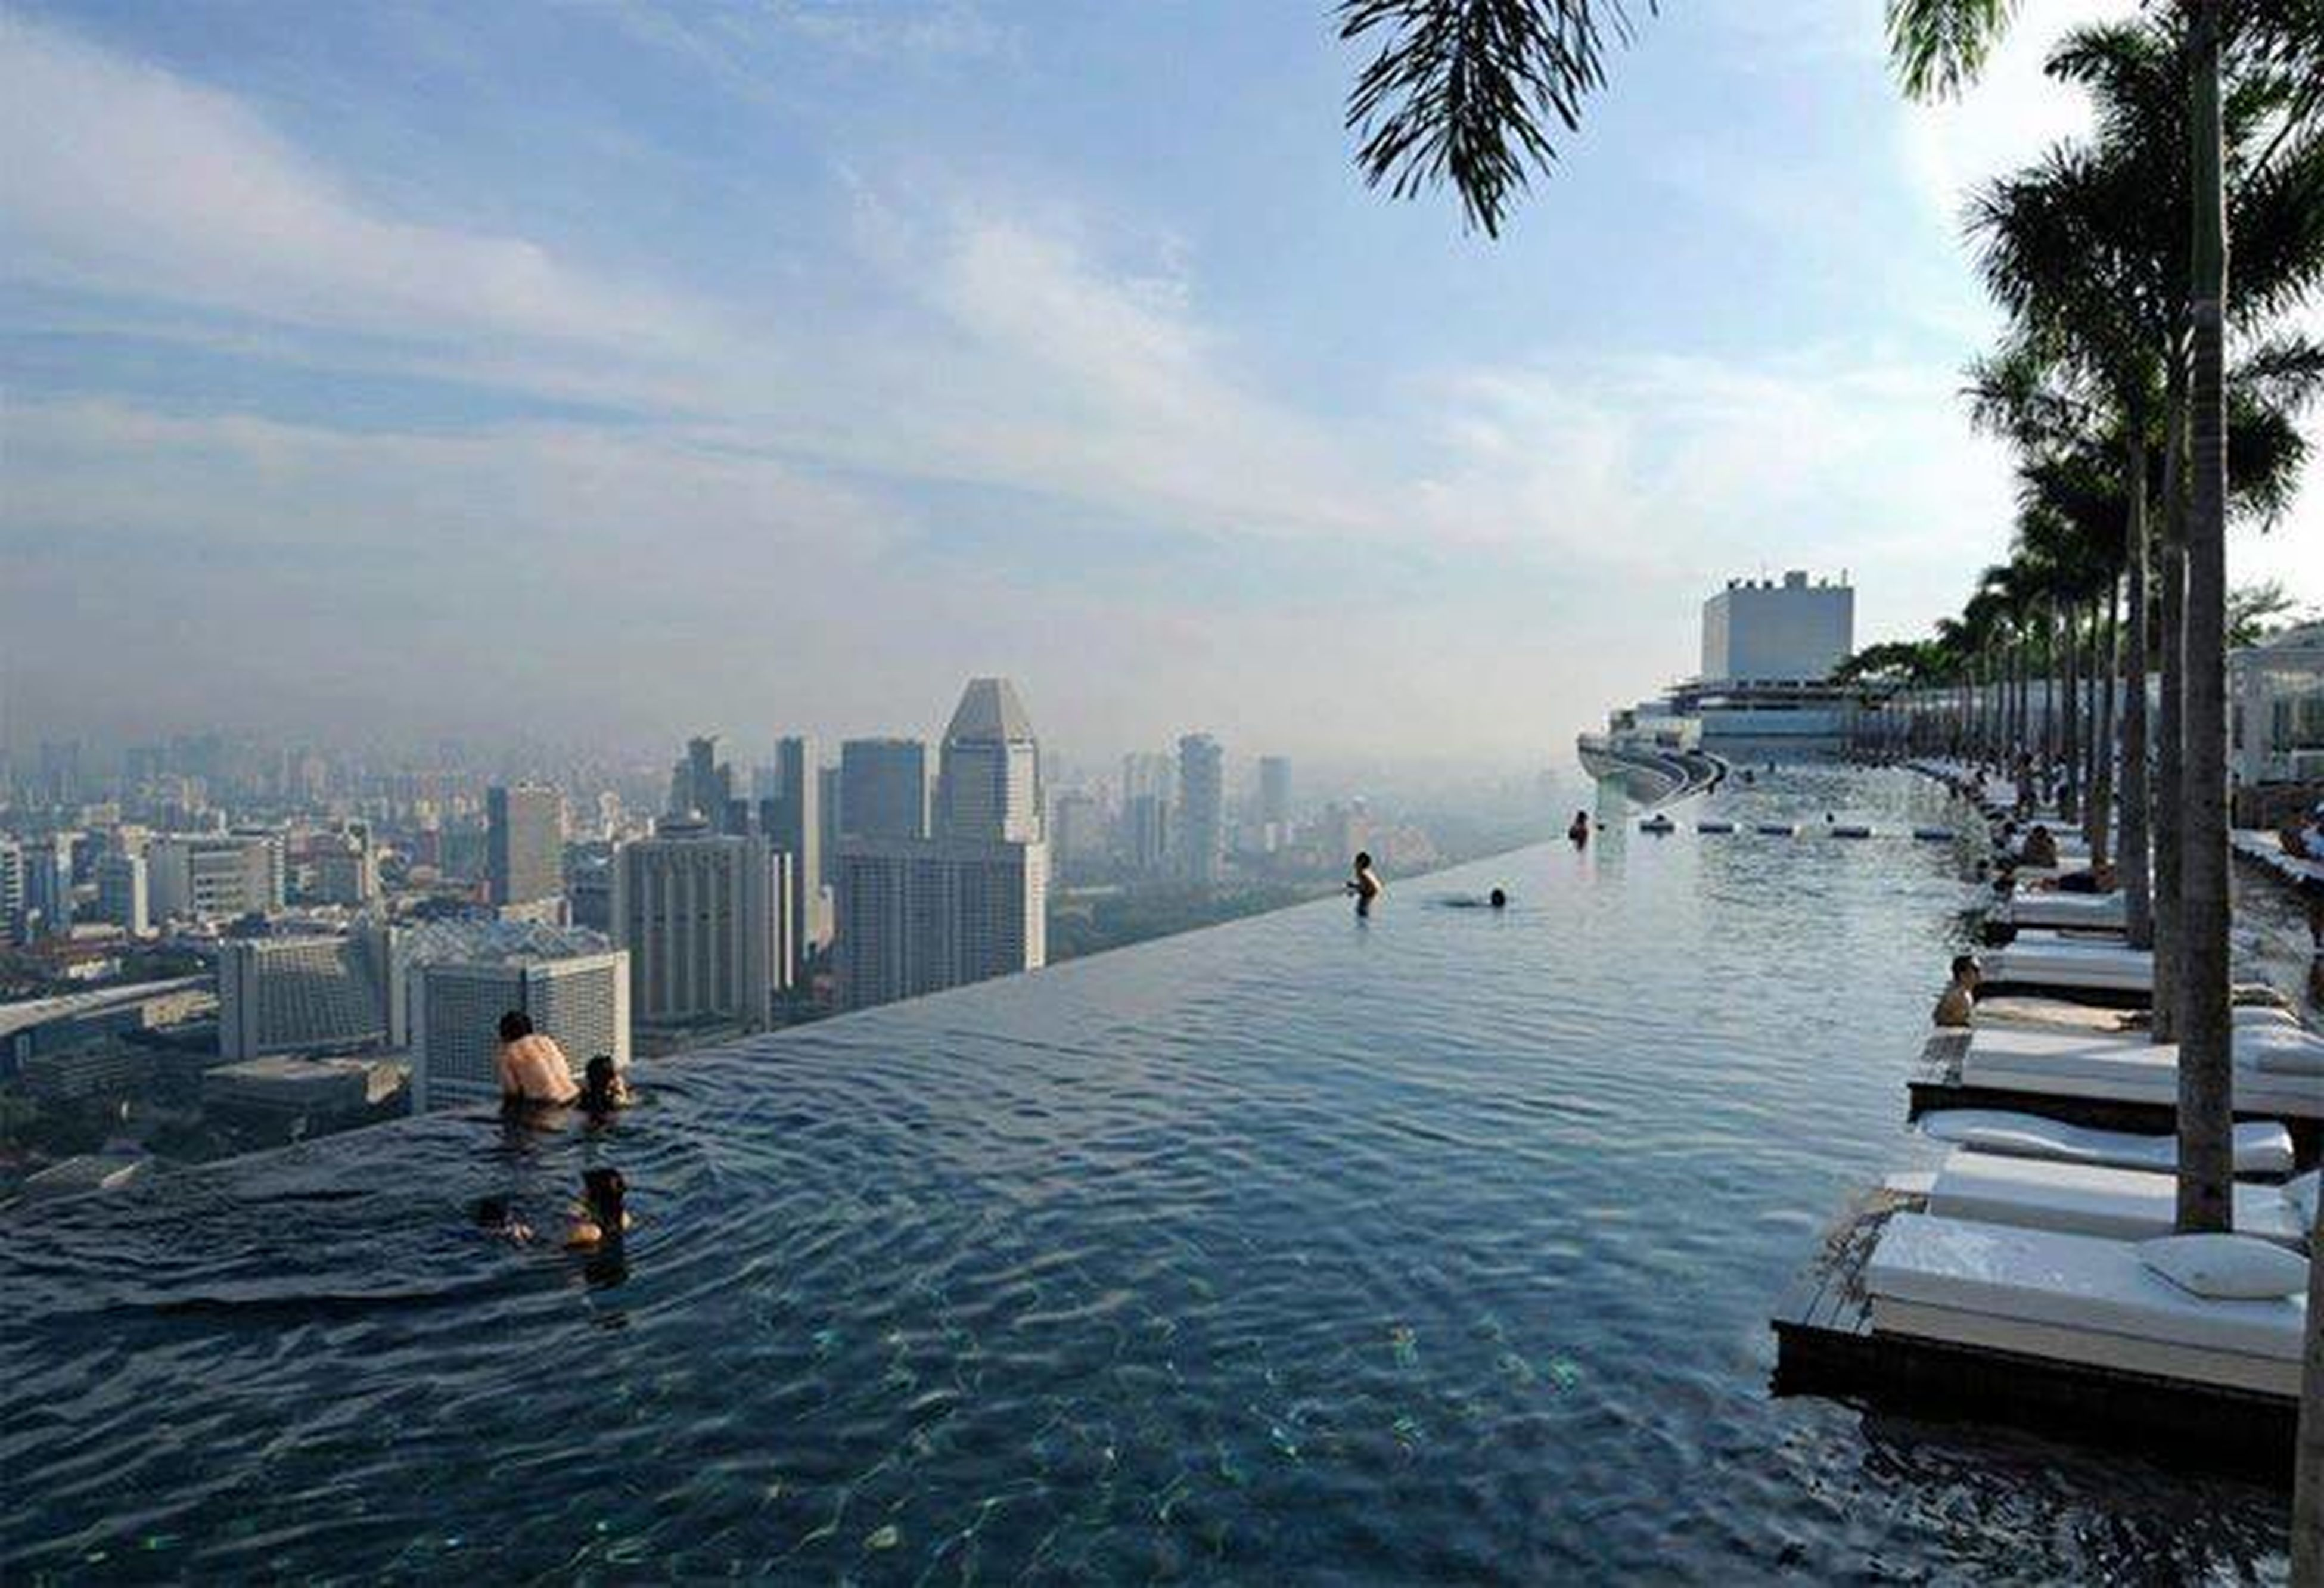 architecture, building exterior, water, built structure, city, lifestyles, leisure activity, waterfront, sky, river, men, city life, cityscape, skyscraper, full length, rear view, person, day